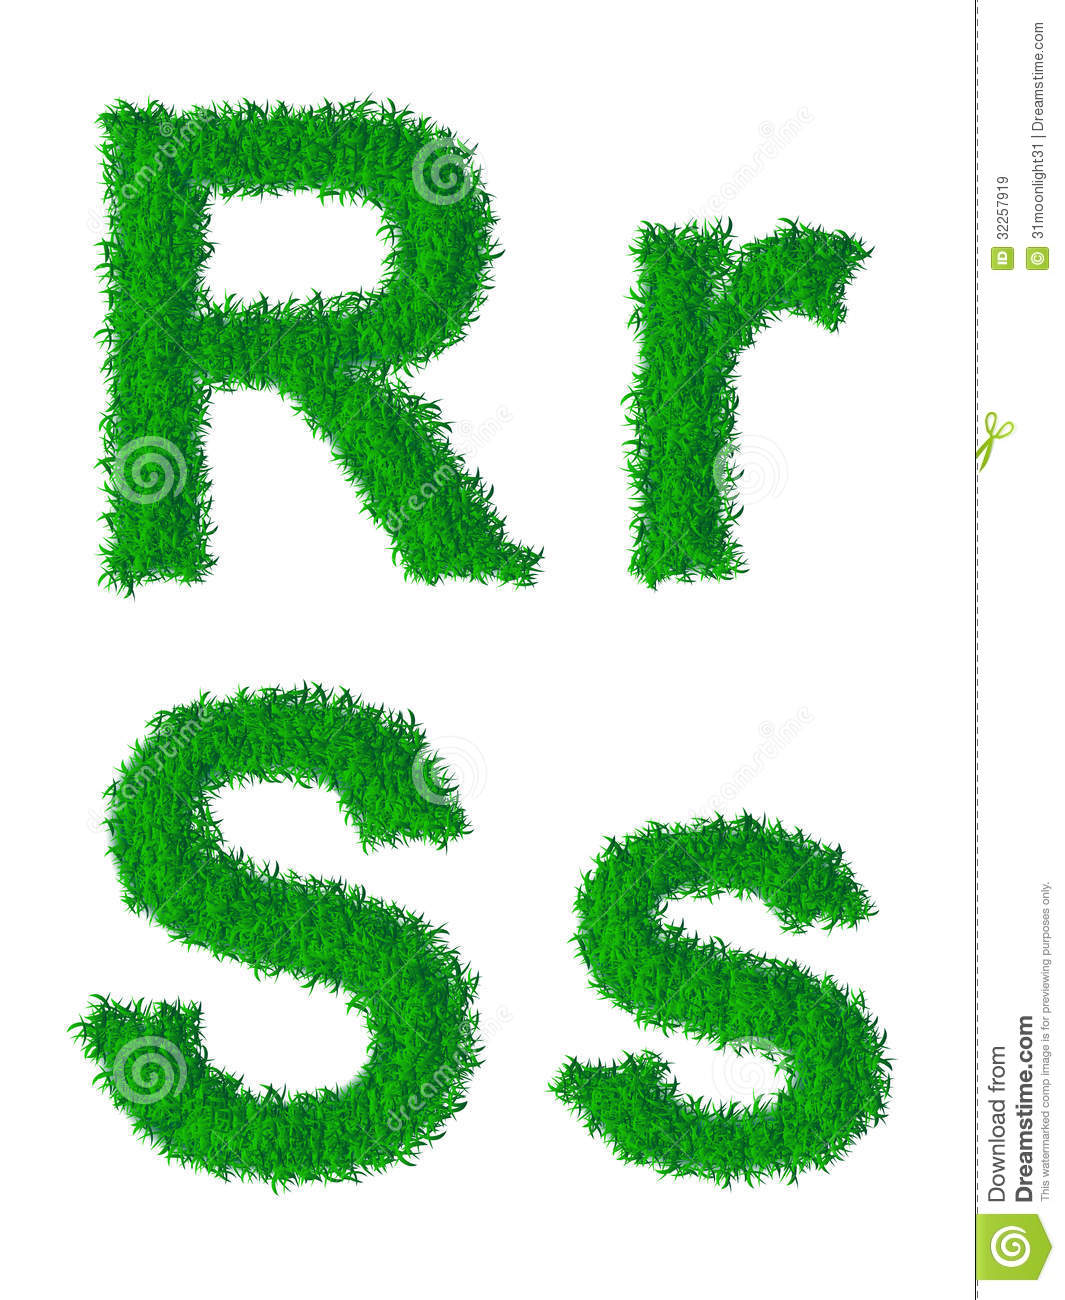 Green Grass Alphabet Stock Vector Illustration Of Decorative